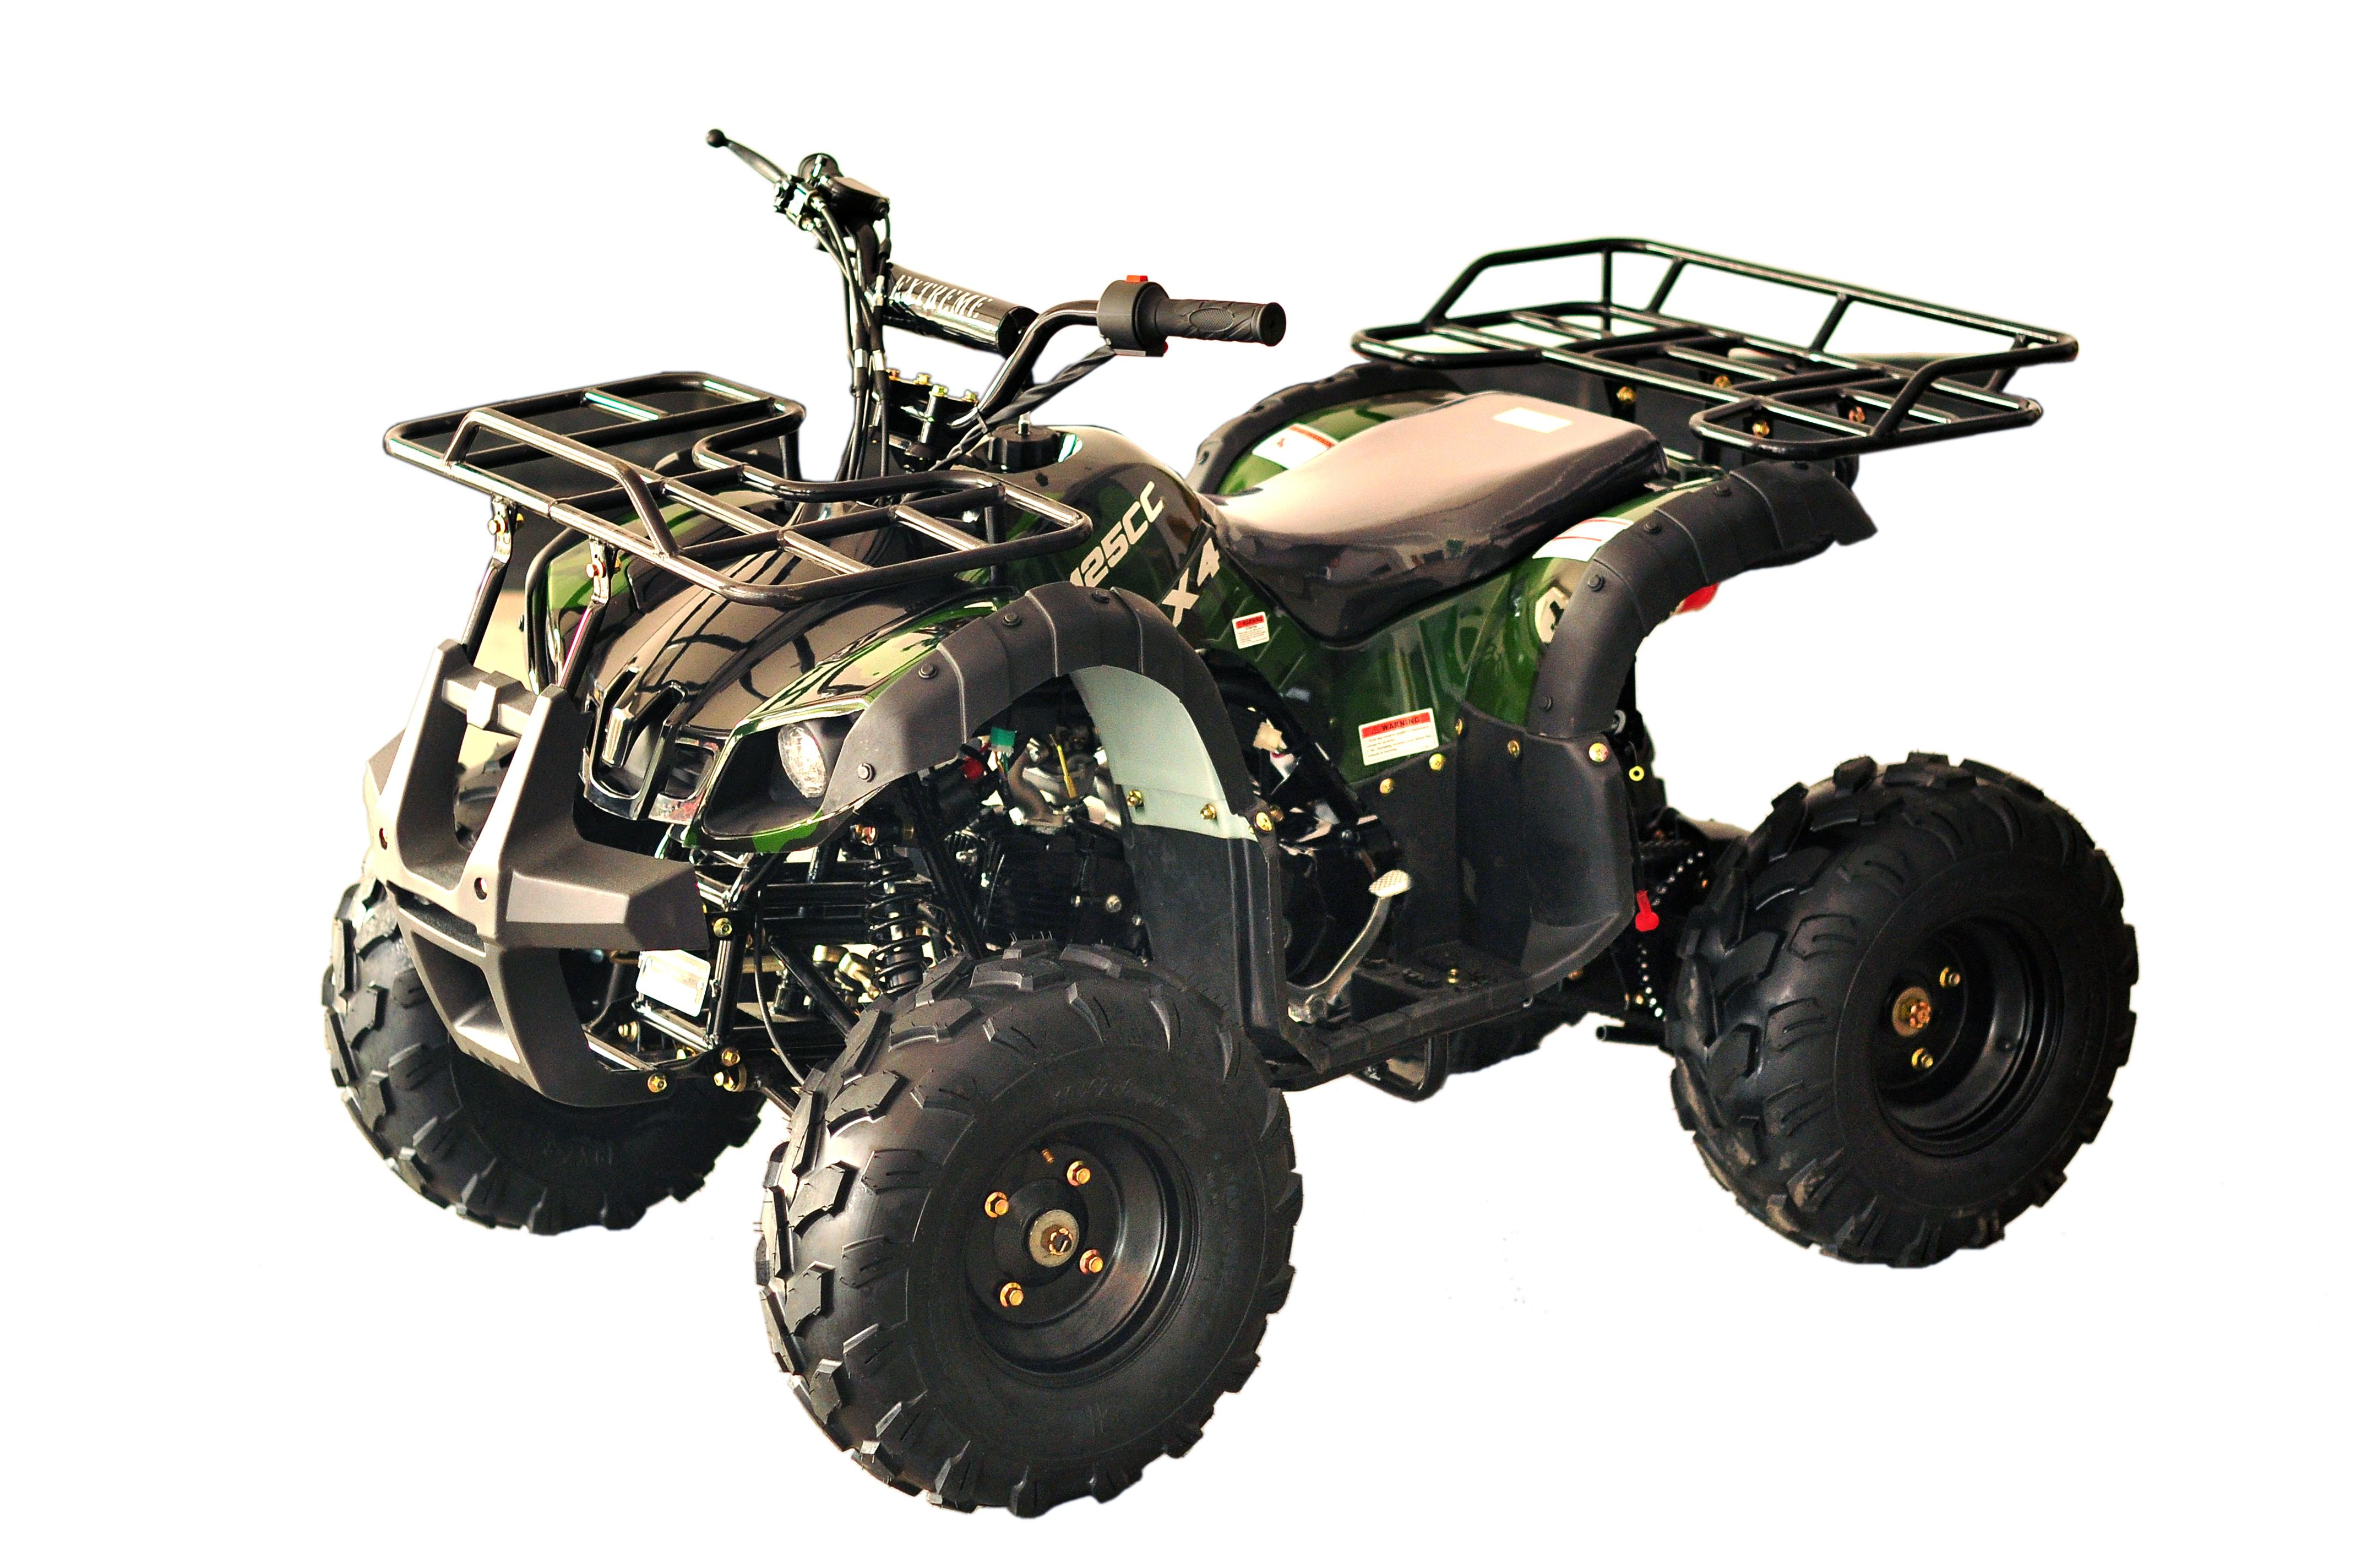 Odes Wiring Diagram also Odes Utv Wiring Diagram together with Hisun Utv Wiring Harness Diagram together with 205632 Starter Relay No Power After 400 Atv as well 800 Hisun Wiring Diagram. on odes atv winch wiring diagram